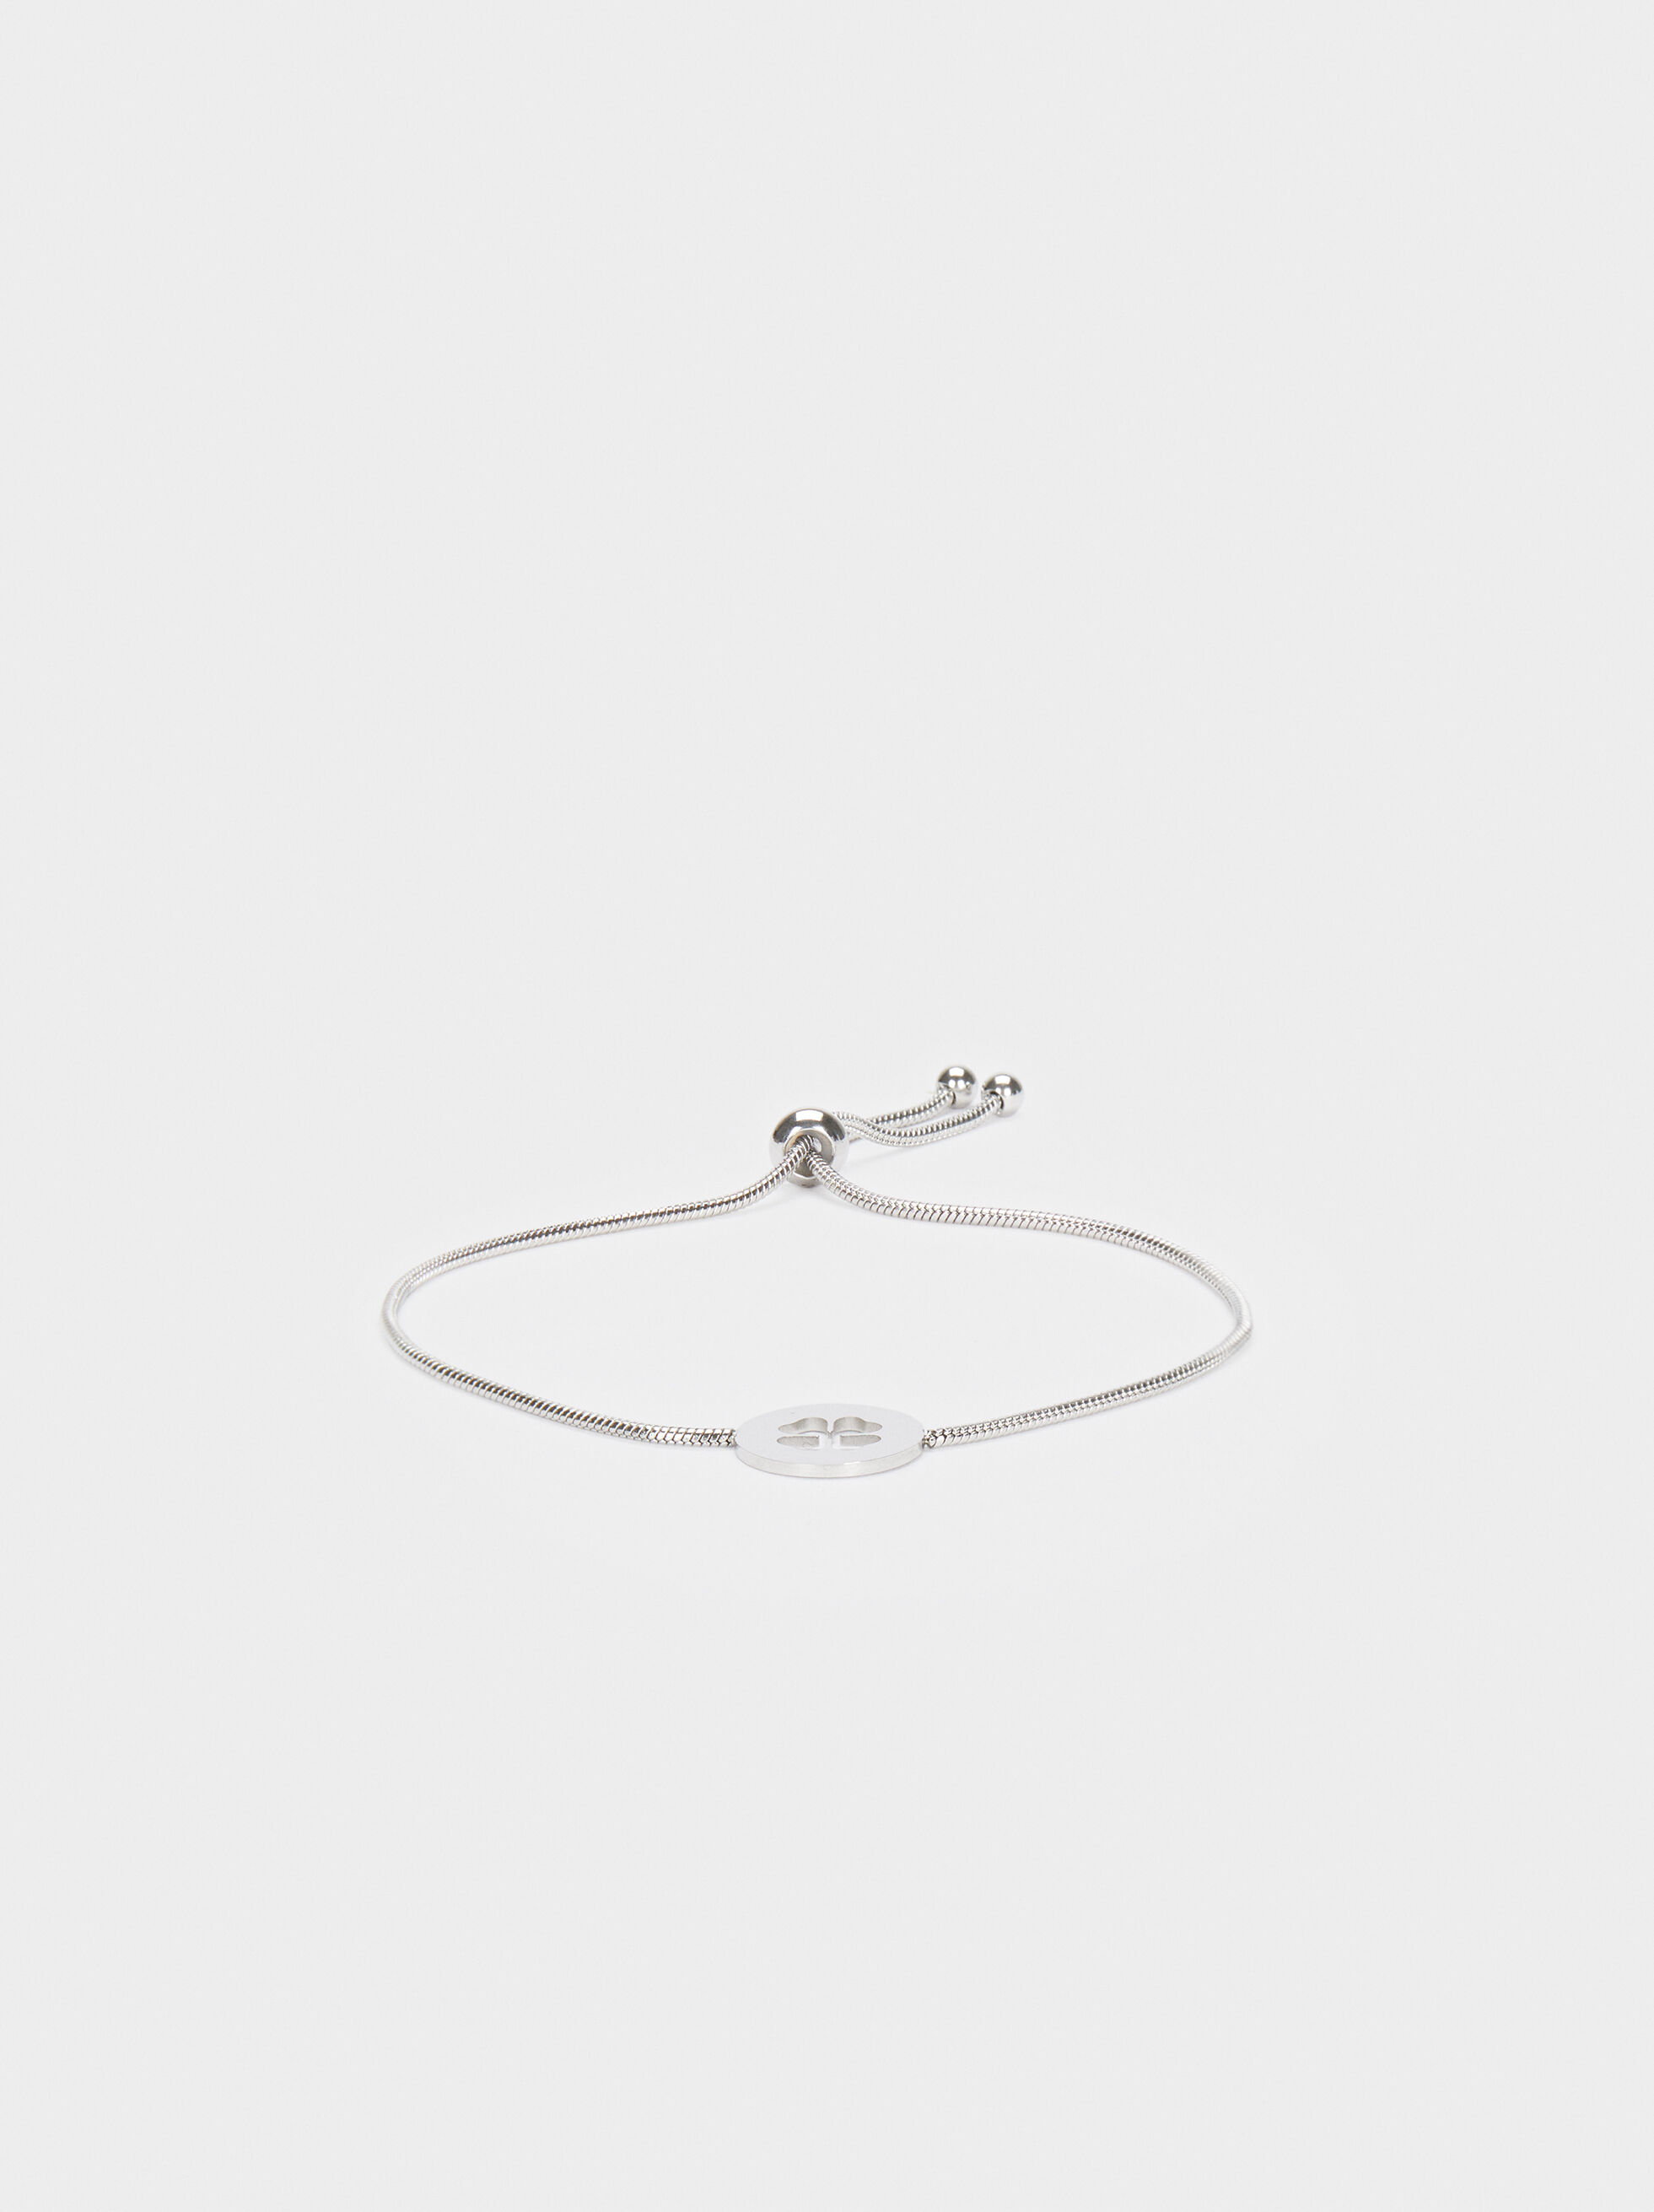 Adjustable Bracelet With Stainless Steel Shamrock Detail, Silver, hi-res